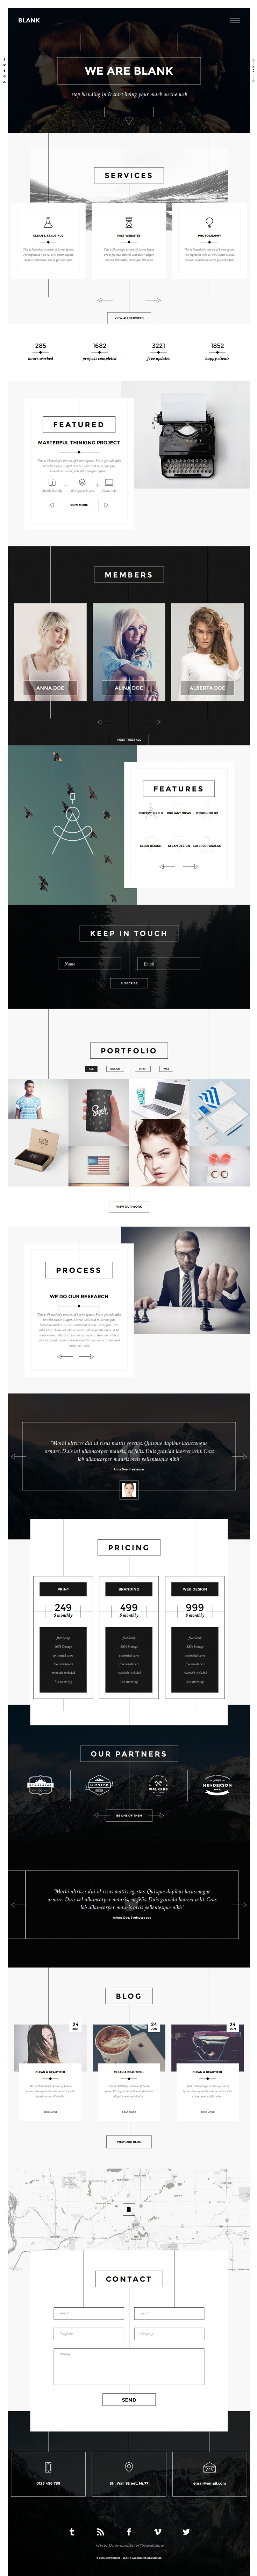 blank creative agency portfolio templates html5 business